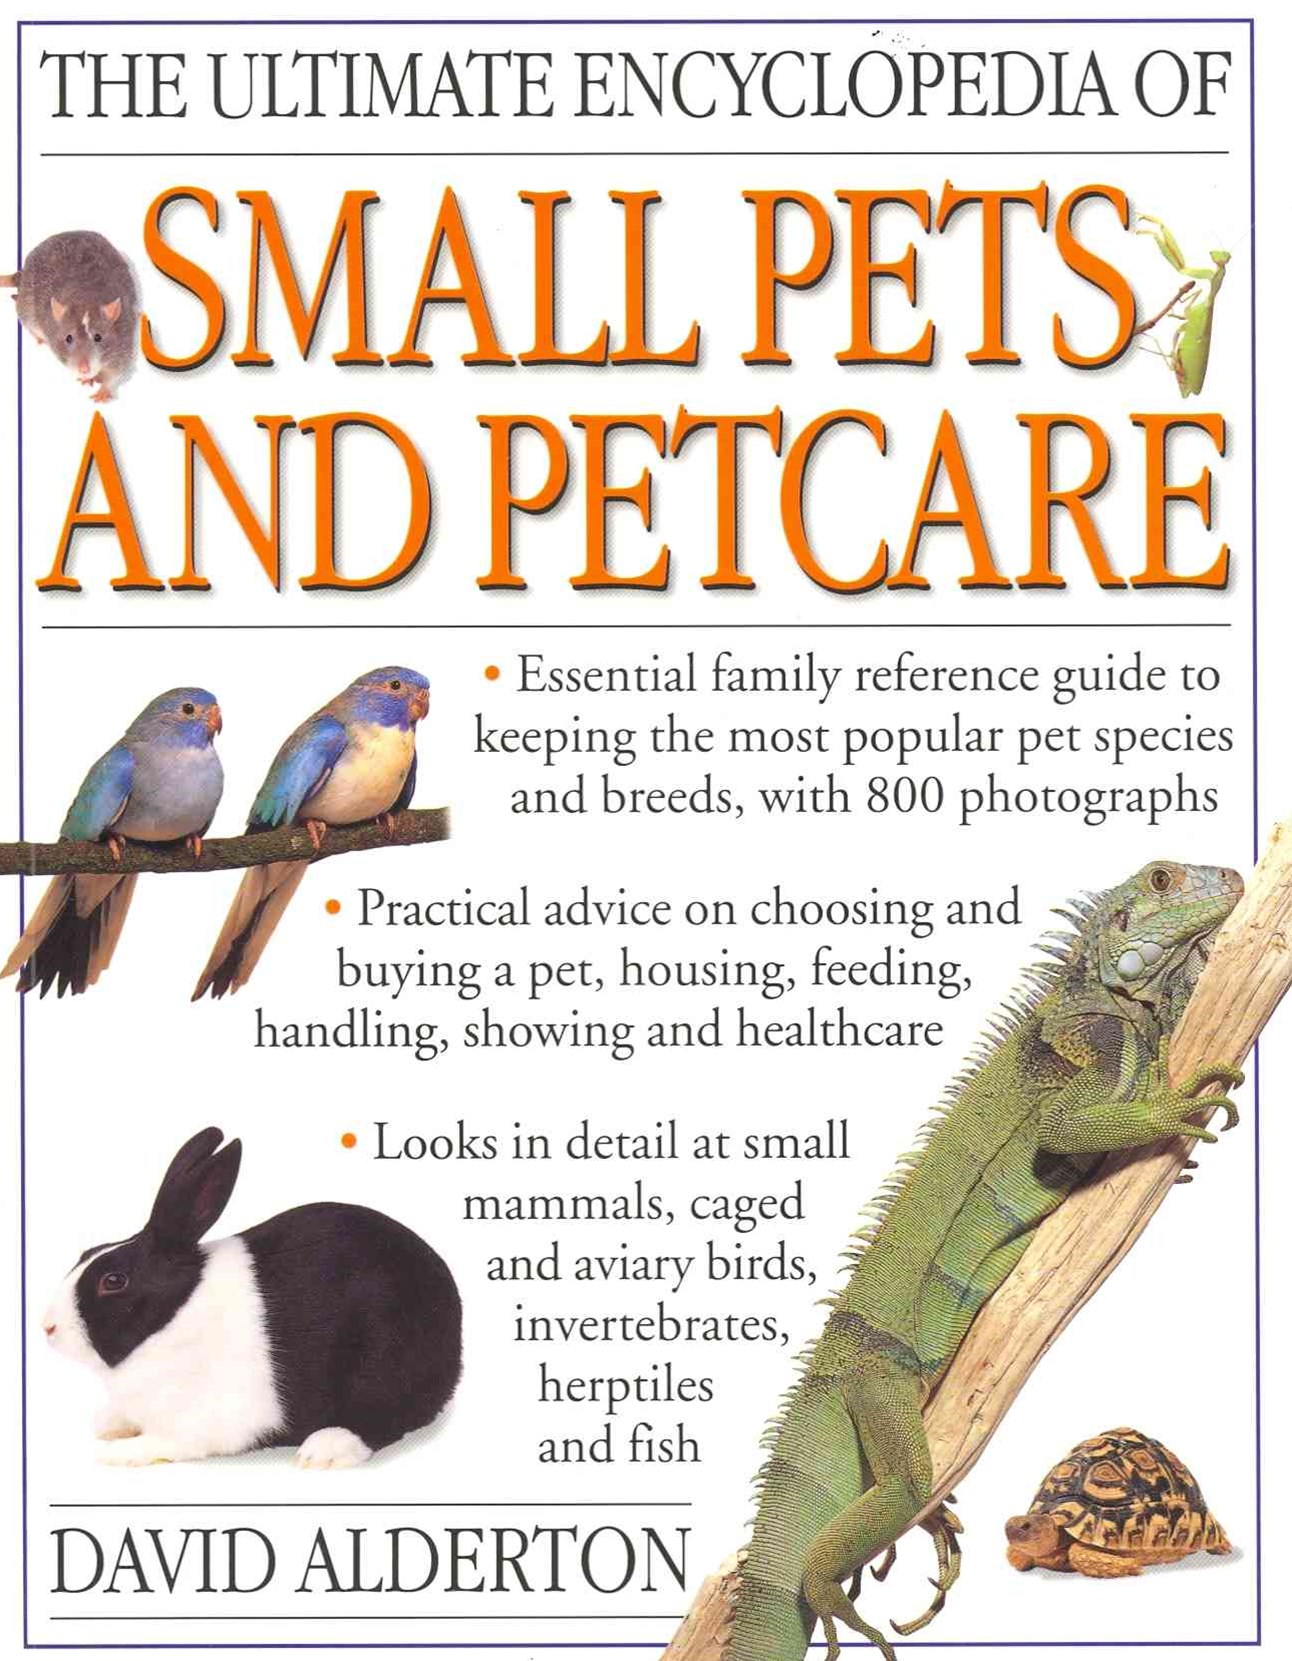 The Ultimate Encyclopedia of Small Pets and Pet Care